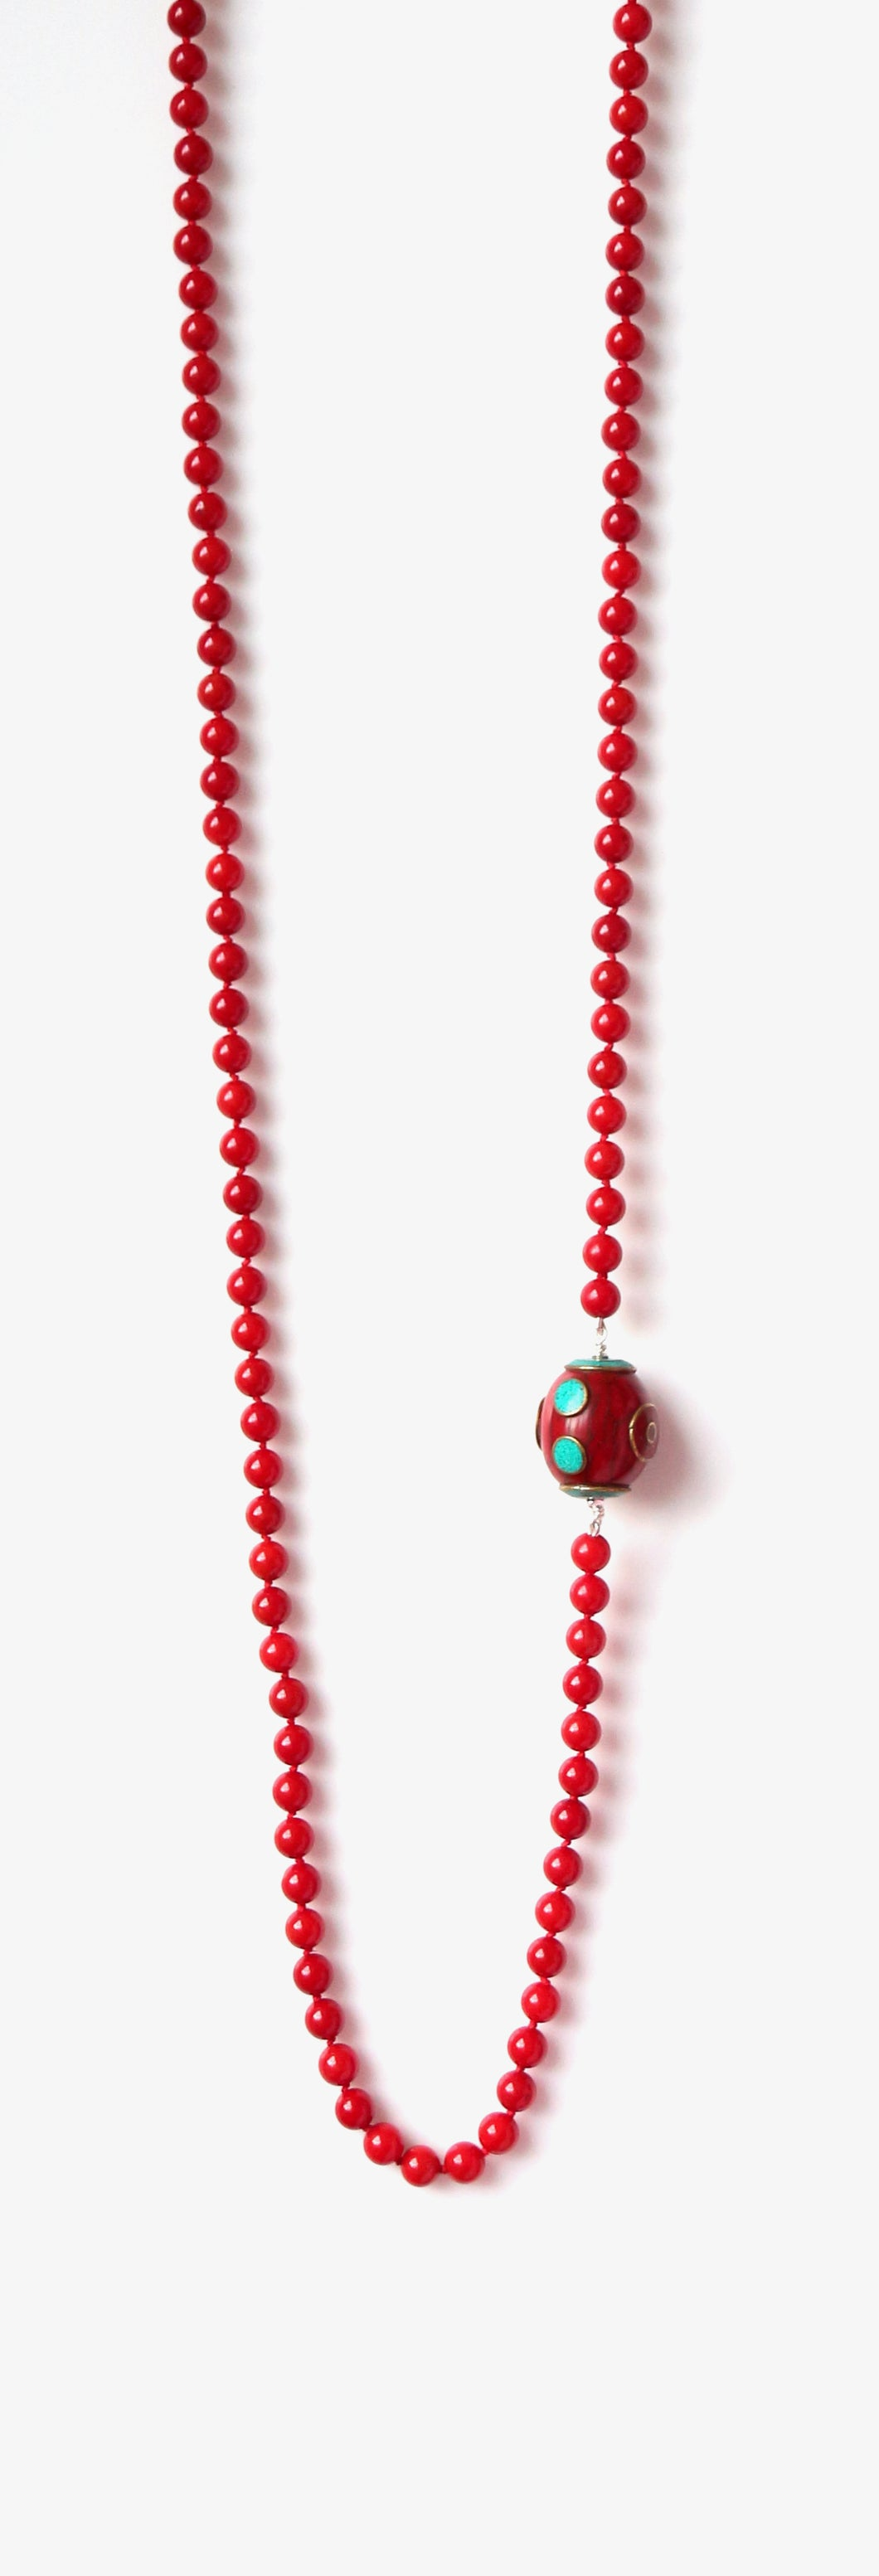 Australian Handmade Red Coral Long Necklace with Tibetan Bead Feature